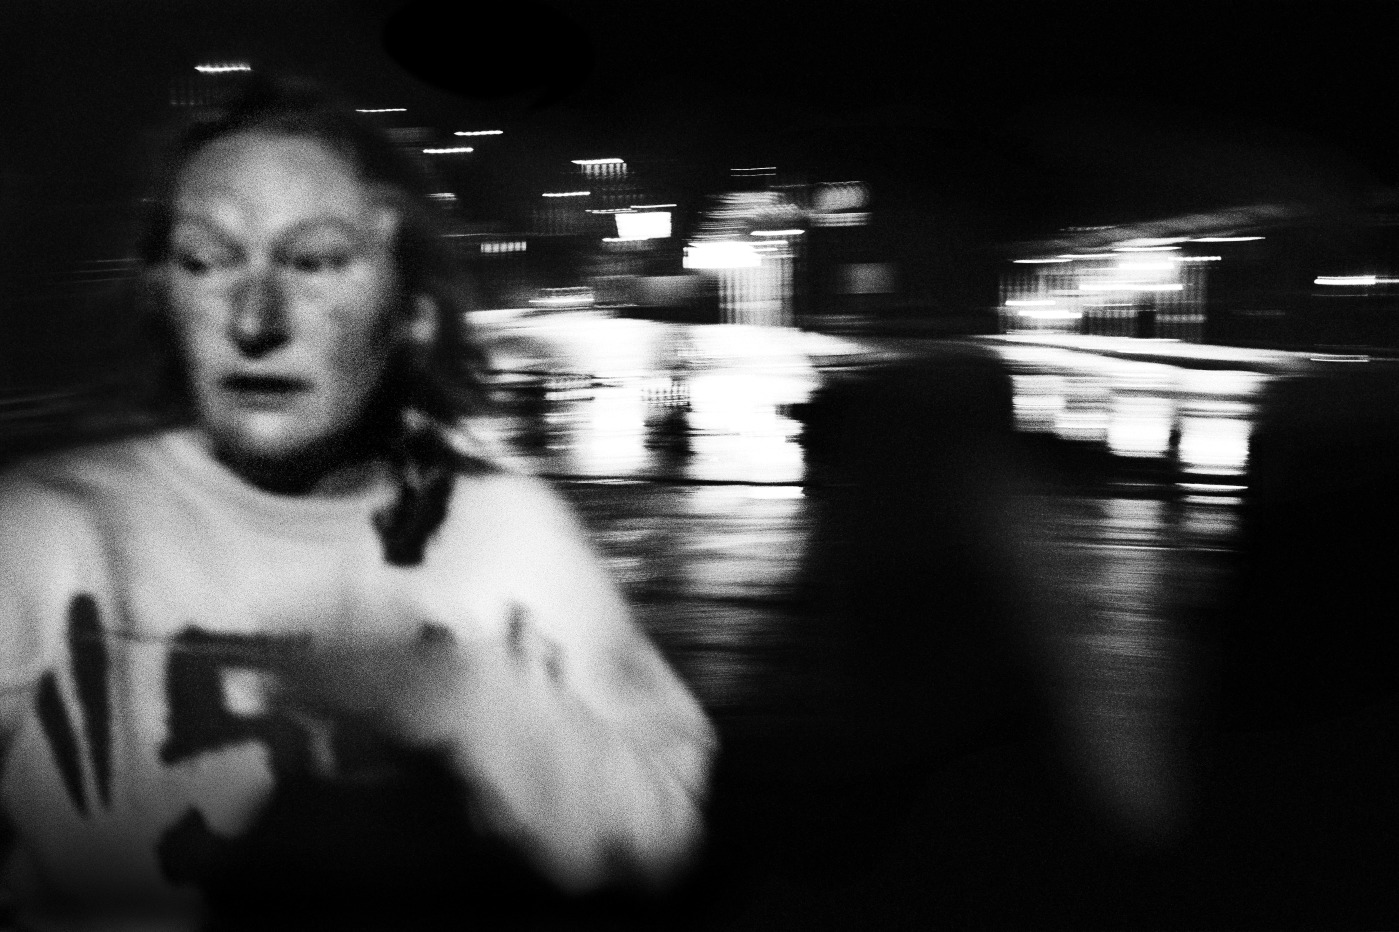 Patrizia is seen in front of the train station. In 2003 she became an homeless. Velletri, Italy 2009. © Matteo Bastianelli